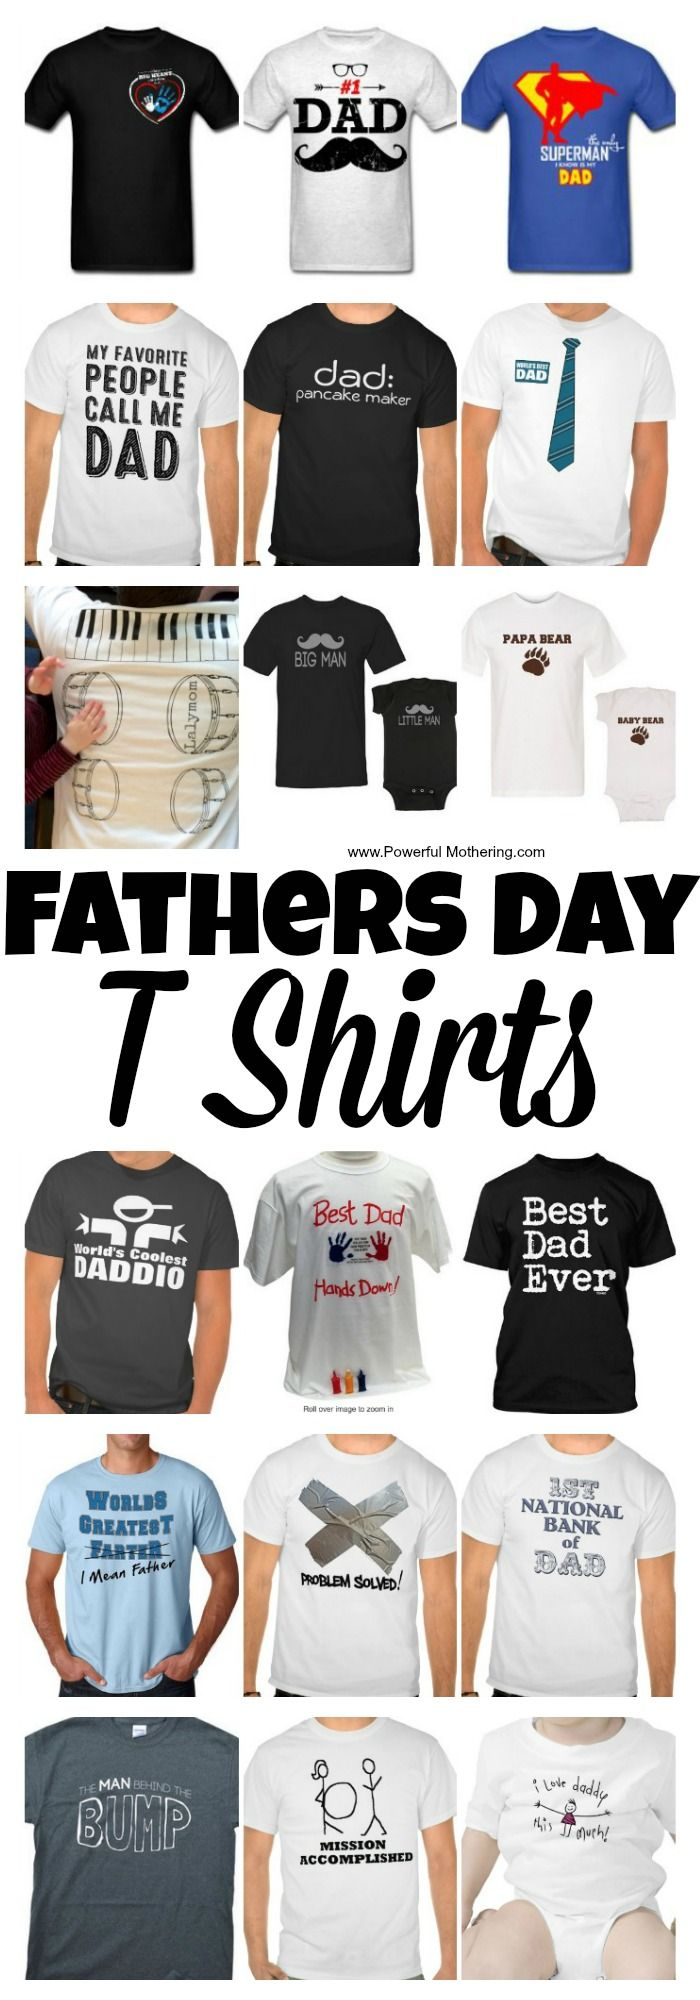 142 best Fathers Day images on Pinterest | Parents\' day, Good ...